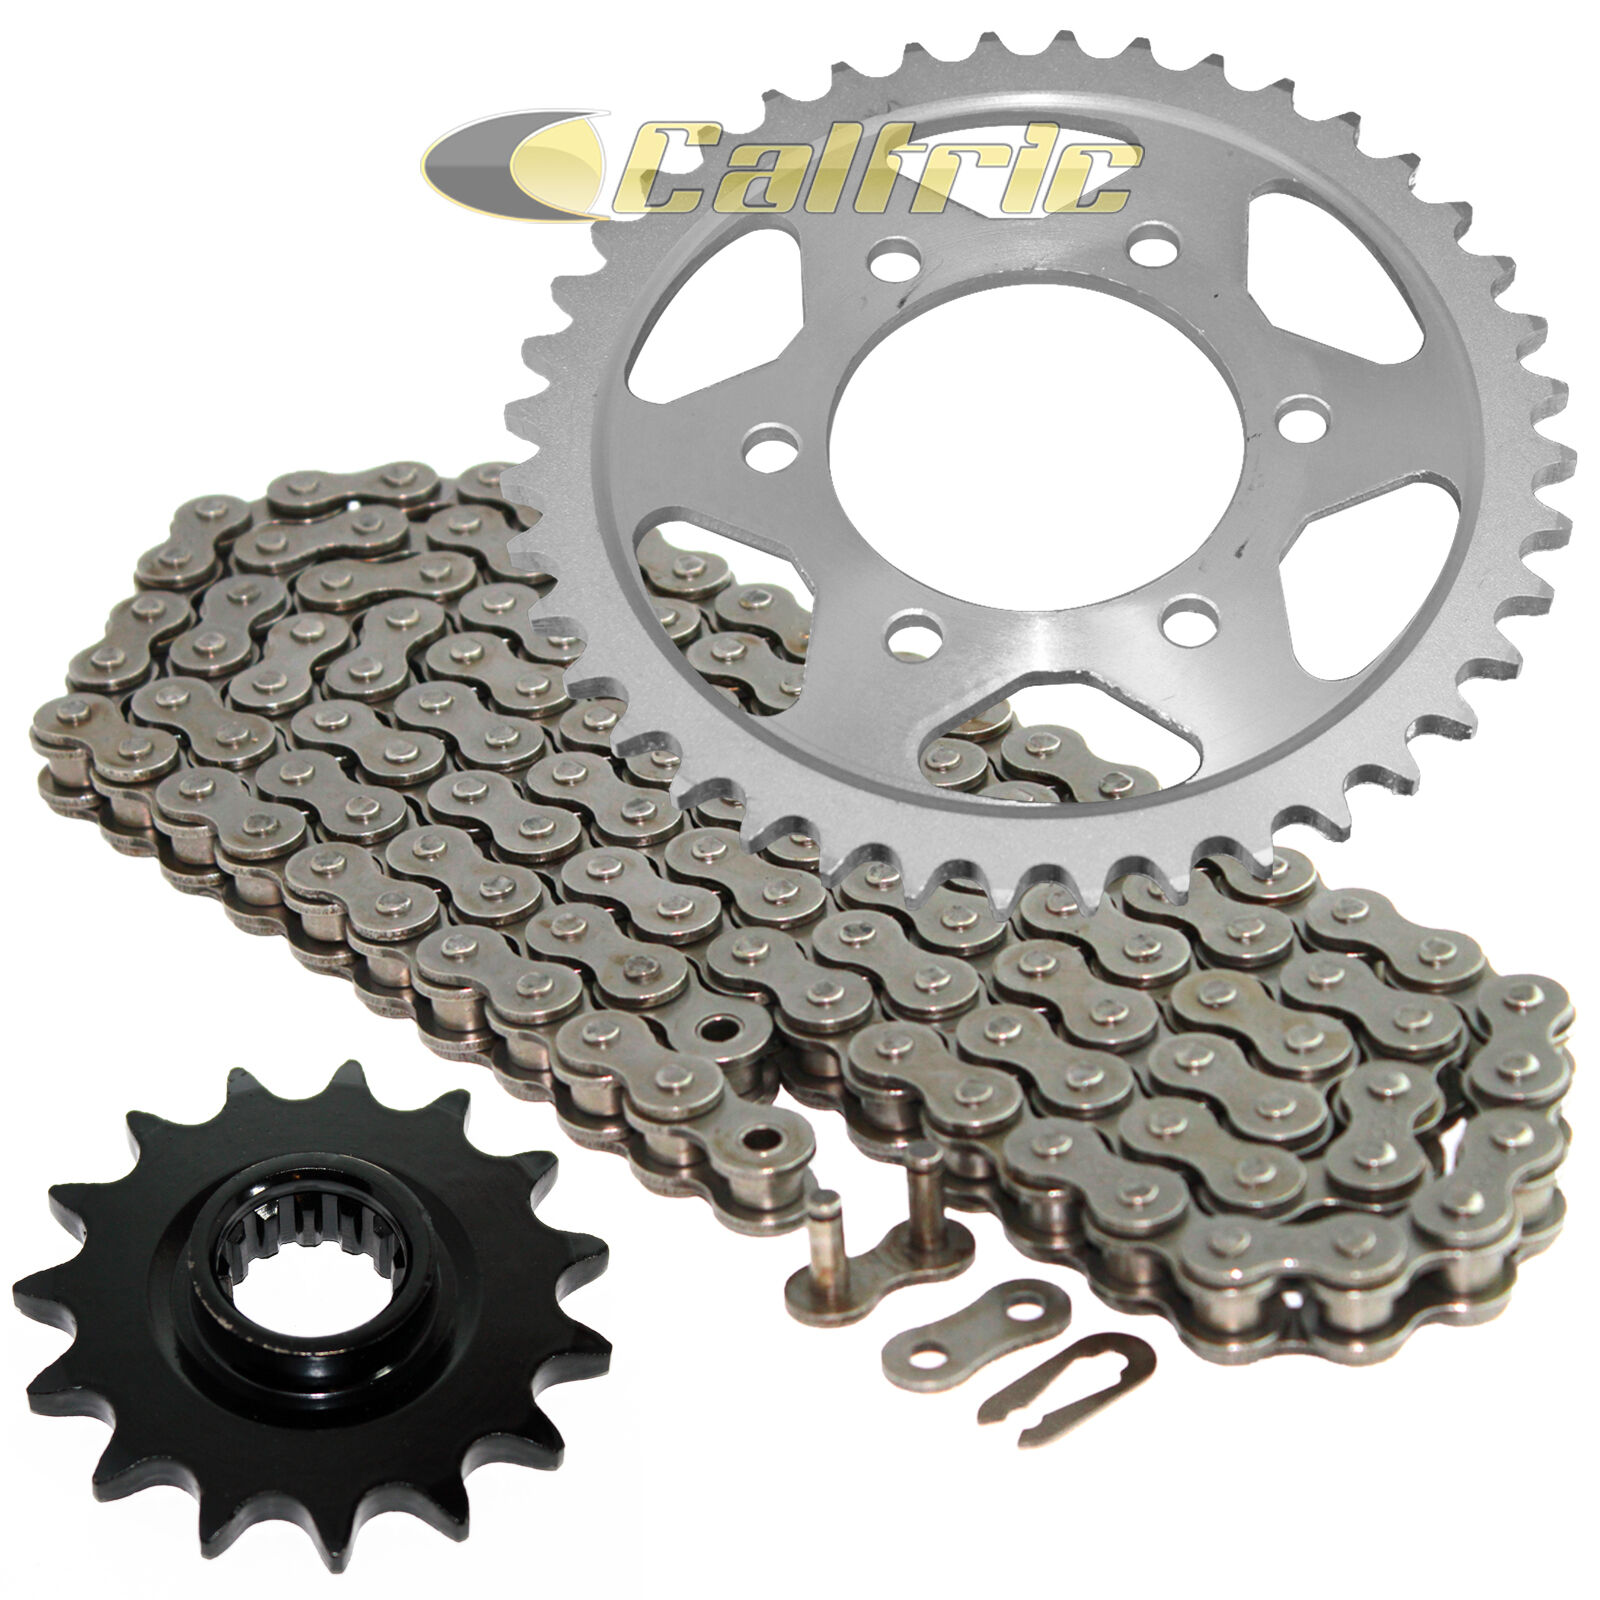 Front /& Rear Steel Sprocket Kit KAWASAKI ZZR600 2005-2008 520H Heavy-Duty Chain